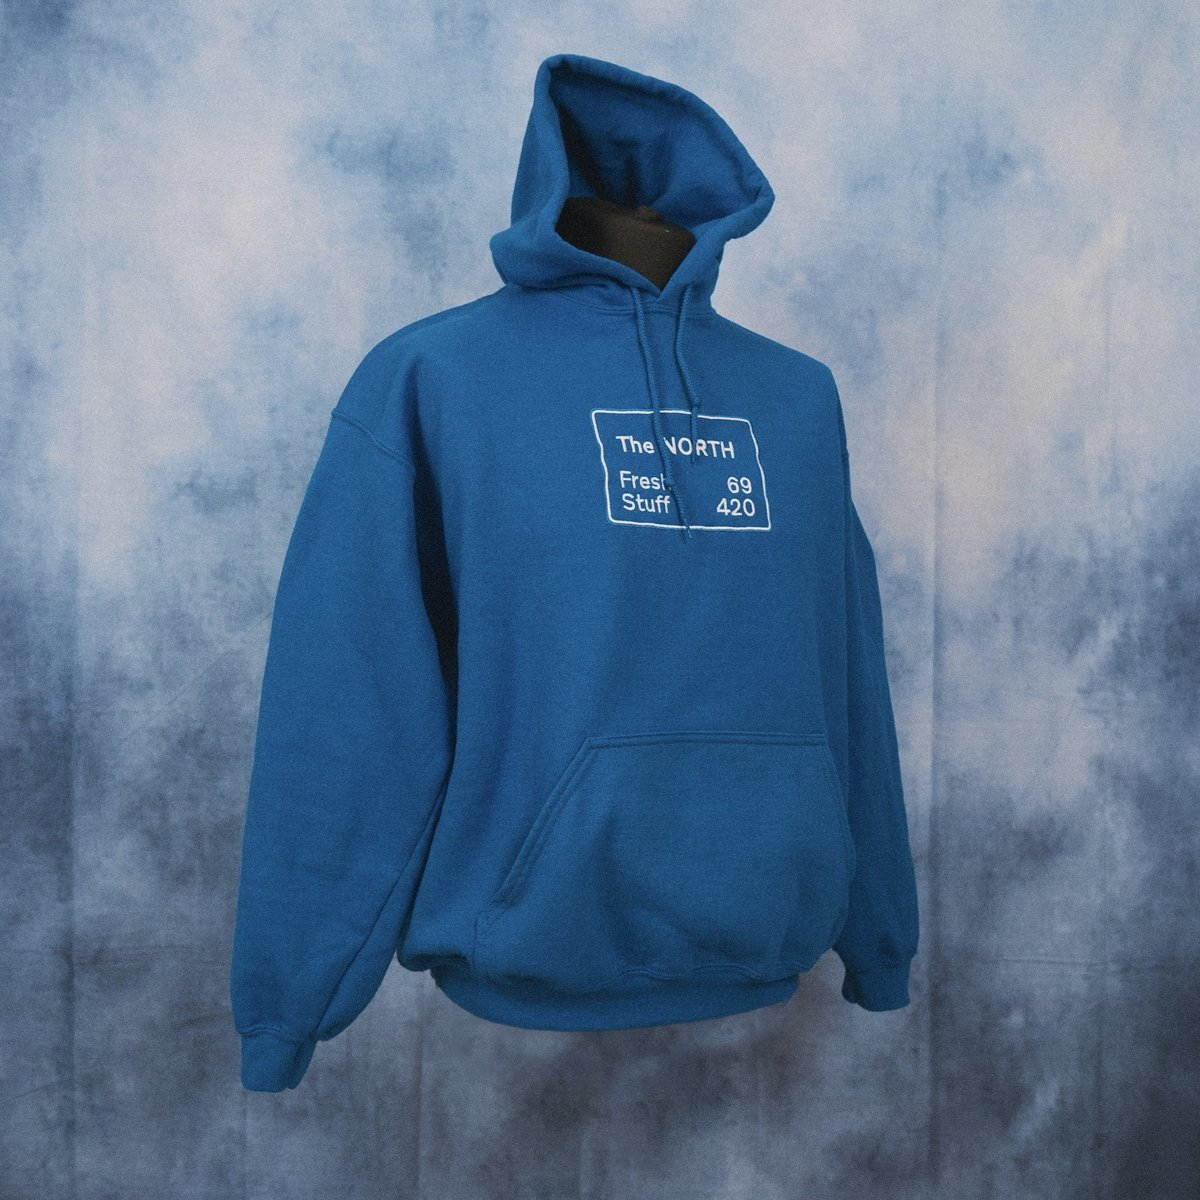 'The NORTH' Unisex Embroidered Hoodie